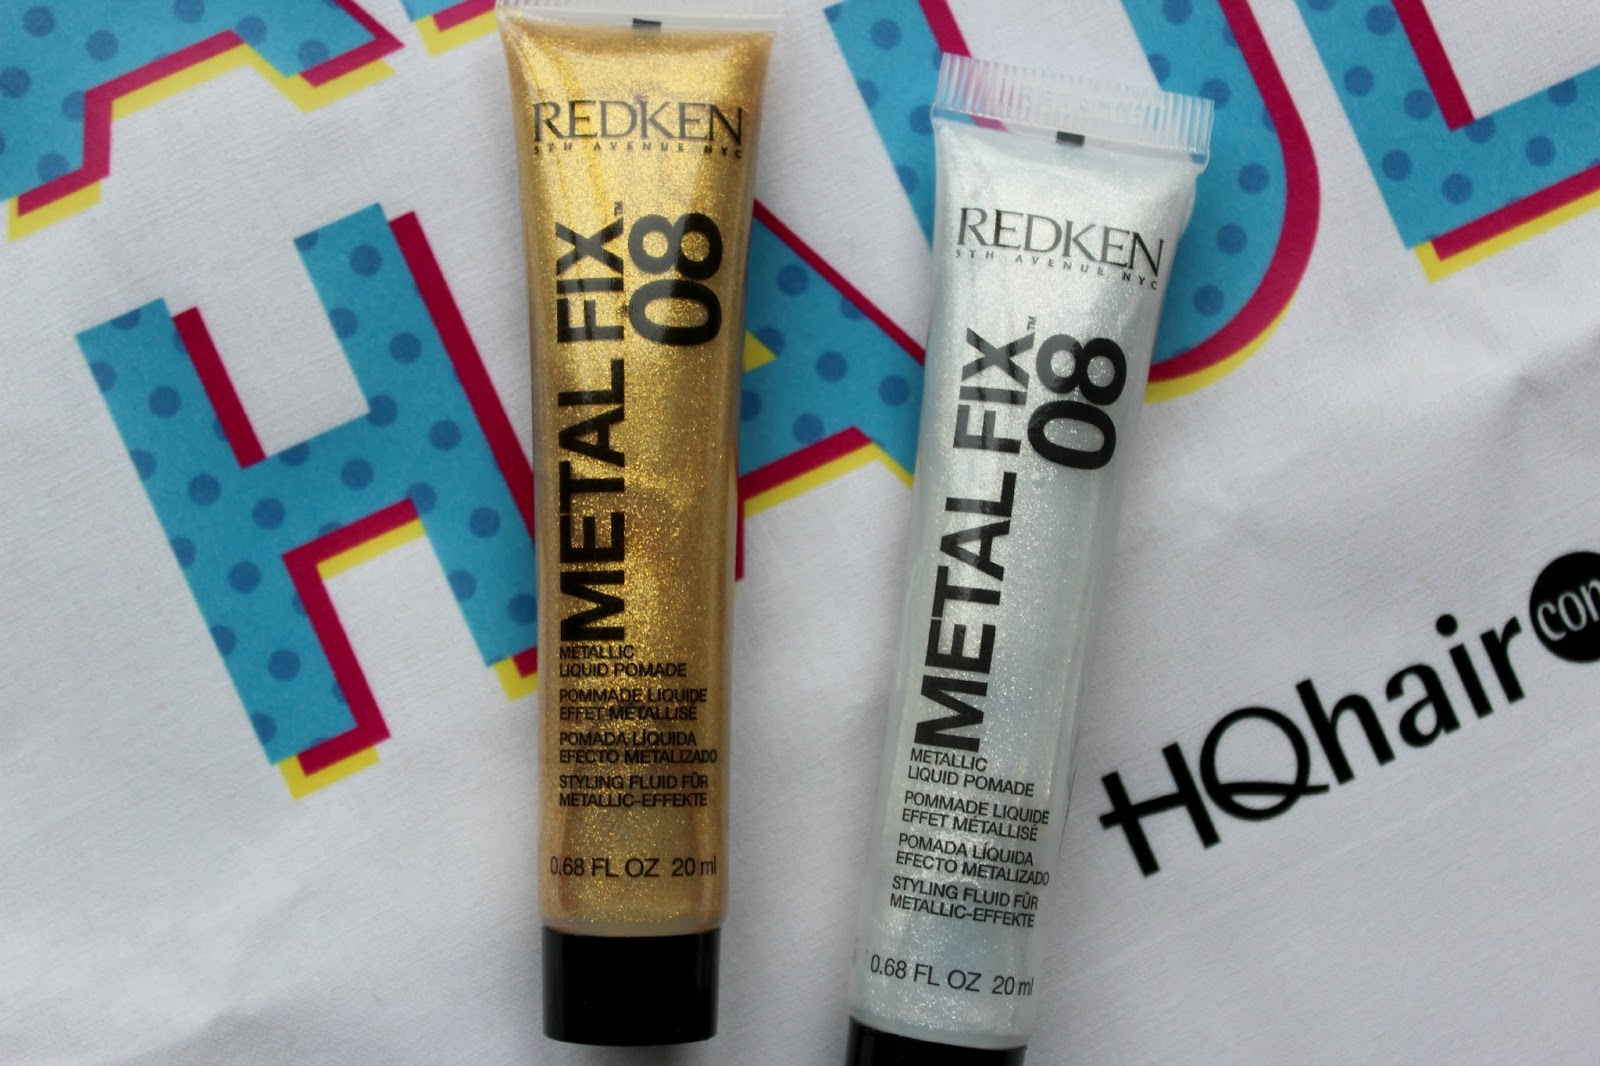 redken-metal-fix-liquid